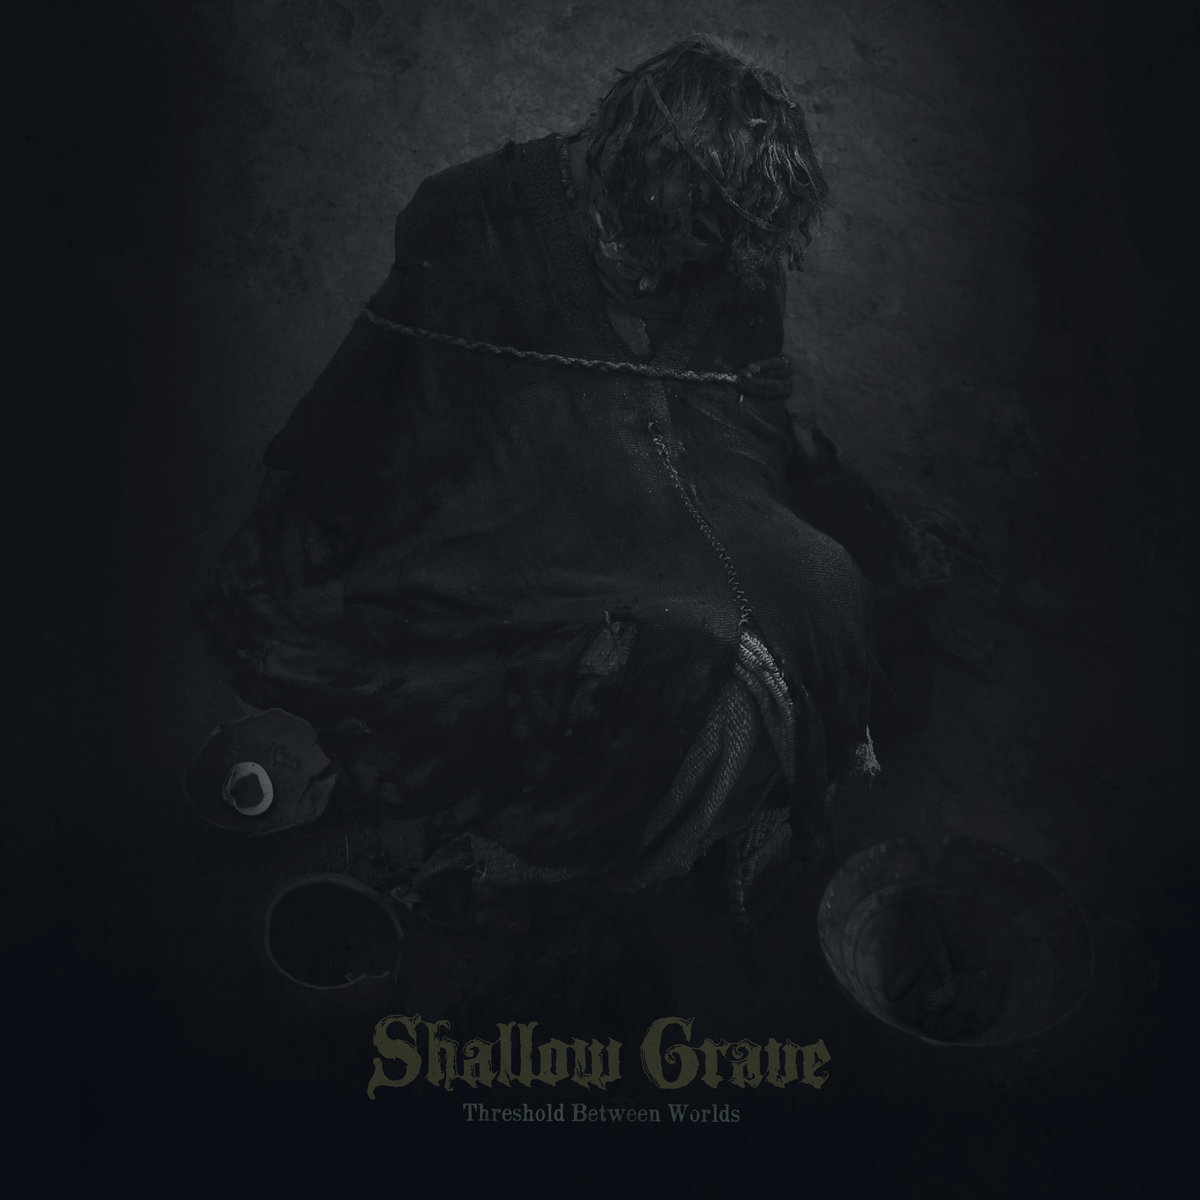 SHALLOW GRAVE - Threshold Between Worlds